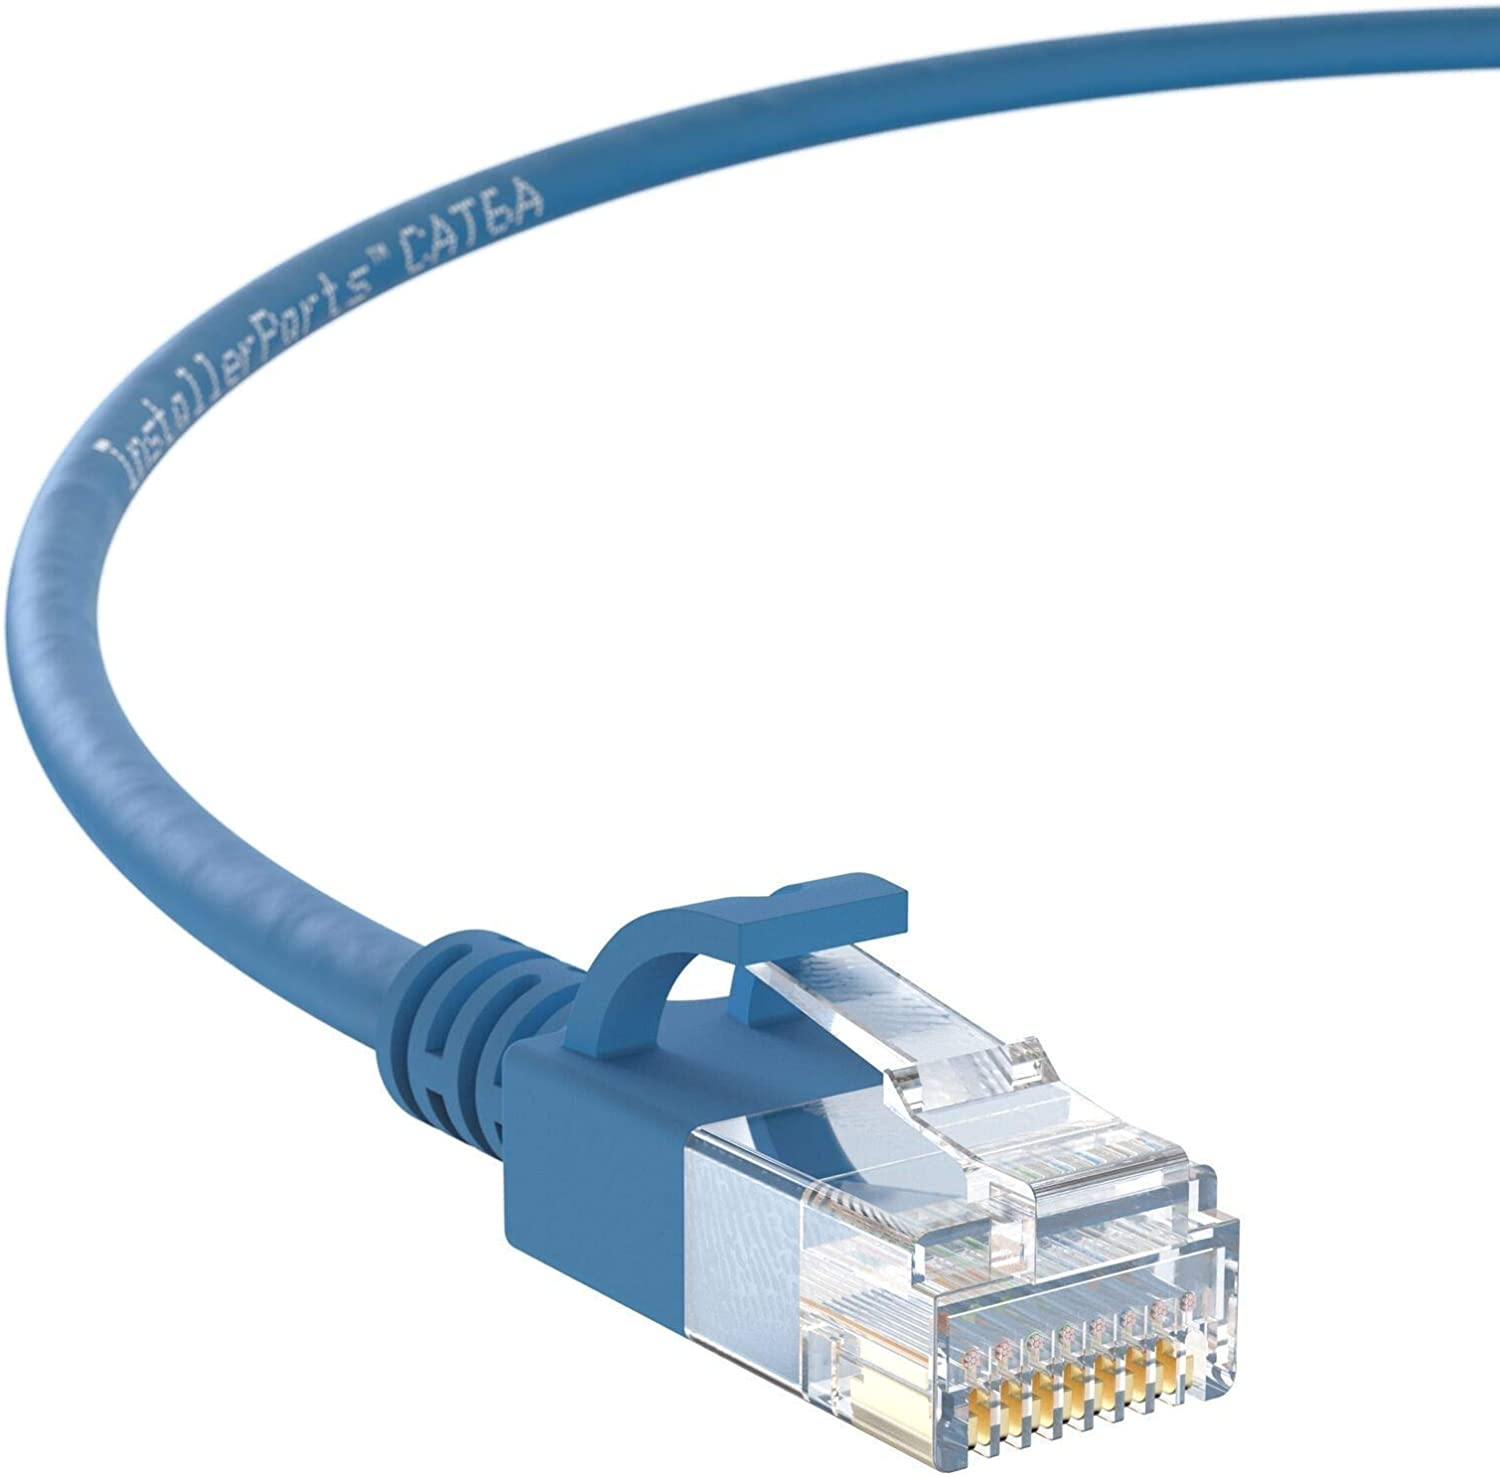 InstallerParts Ethernet Cable CAT6A Slim Booted FT 1 UTP Ranking TOP3 Popular brand in the world